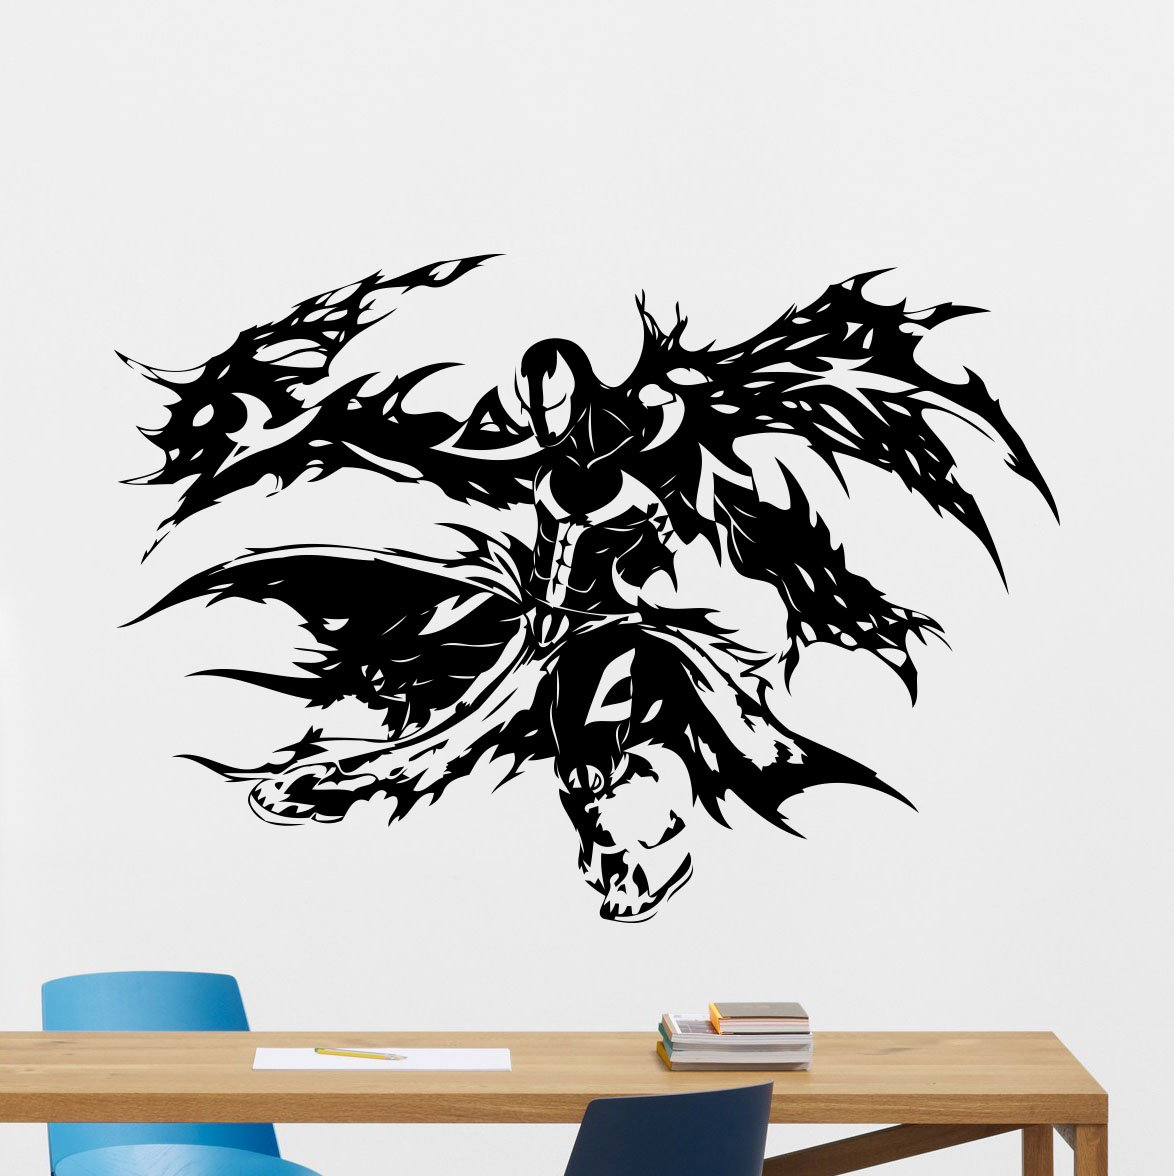 Cheap superhero wall decals home design blog superhero wall amazoncom spawn wall vinyl decal marvel comics superhero wall superhero wall decals amipublicfo Gallery